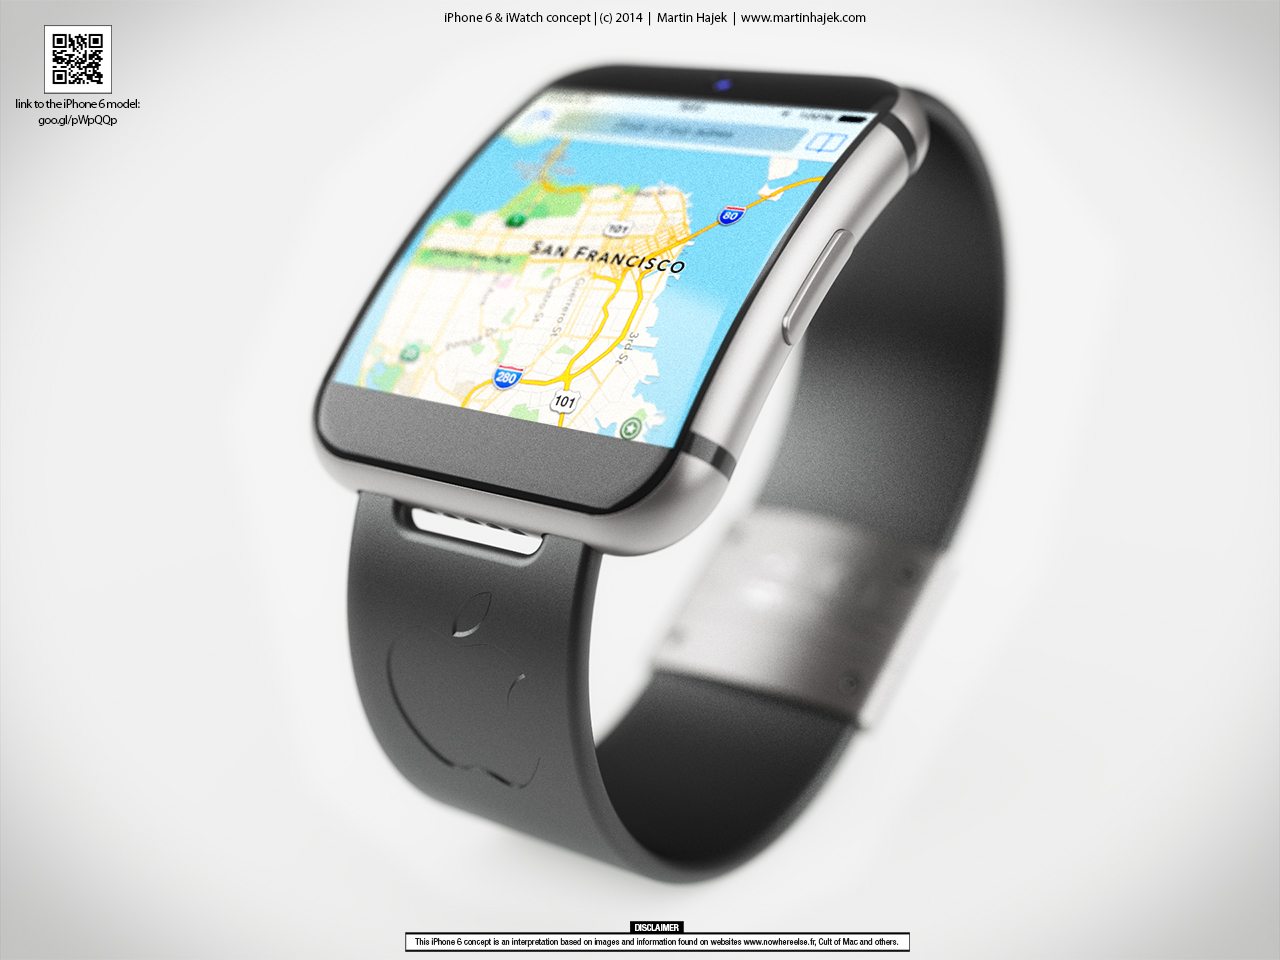 iphone6_iwatch_konzept11